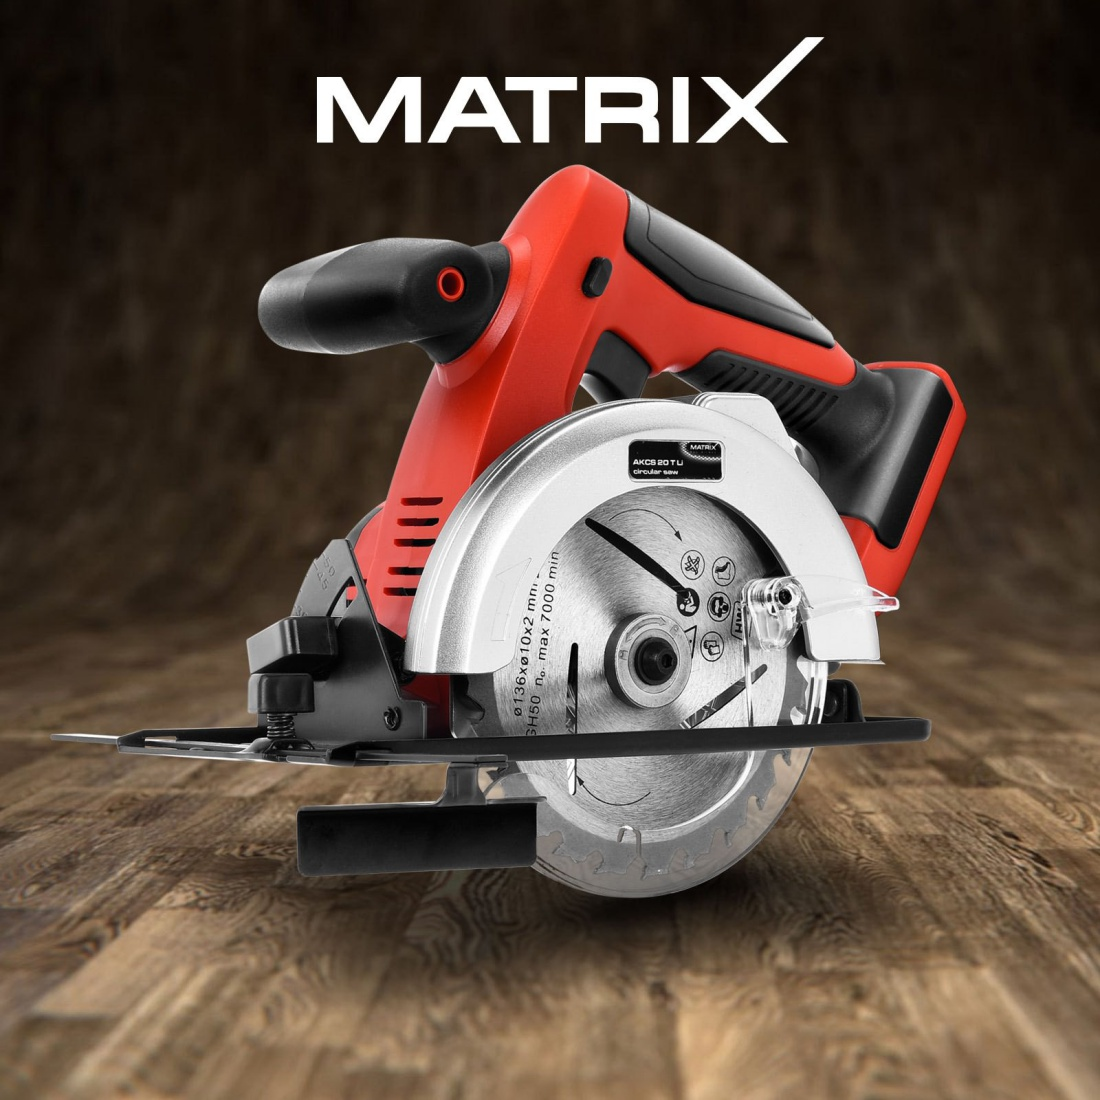 Matrix 20V Cordless Circular Saw 136mm Lithium Electric Power Tool Skin Only